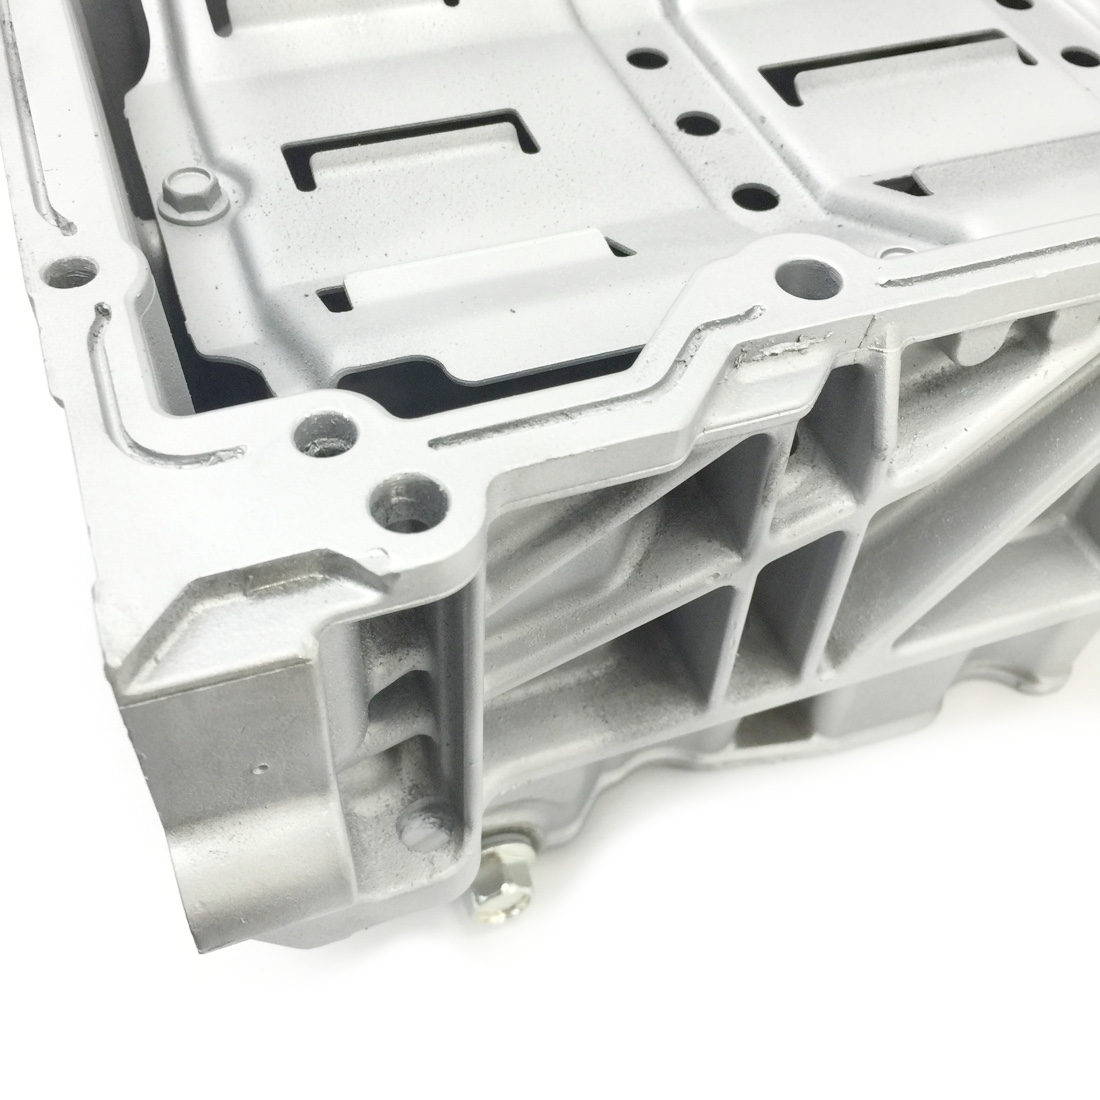 Op on Cadillac Cts Oil Pan